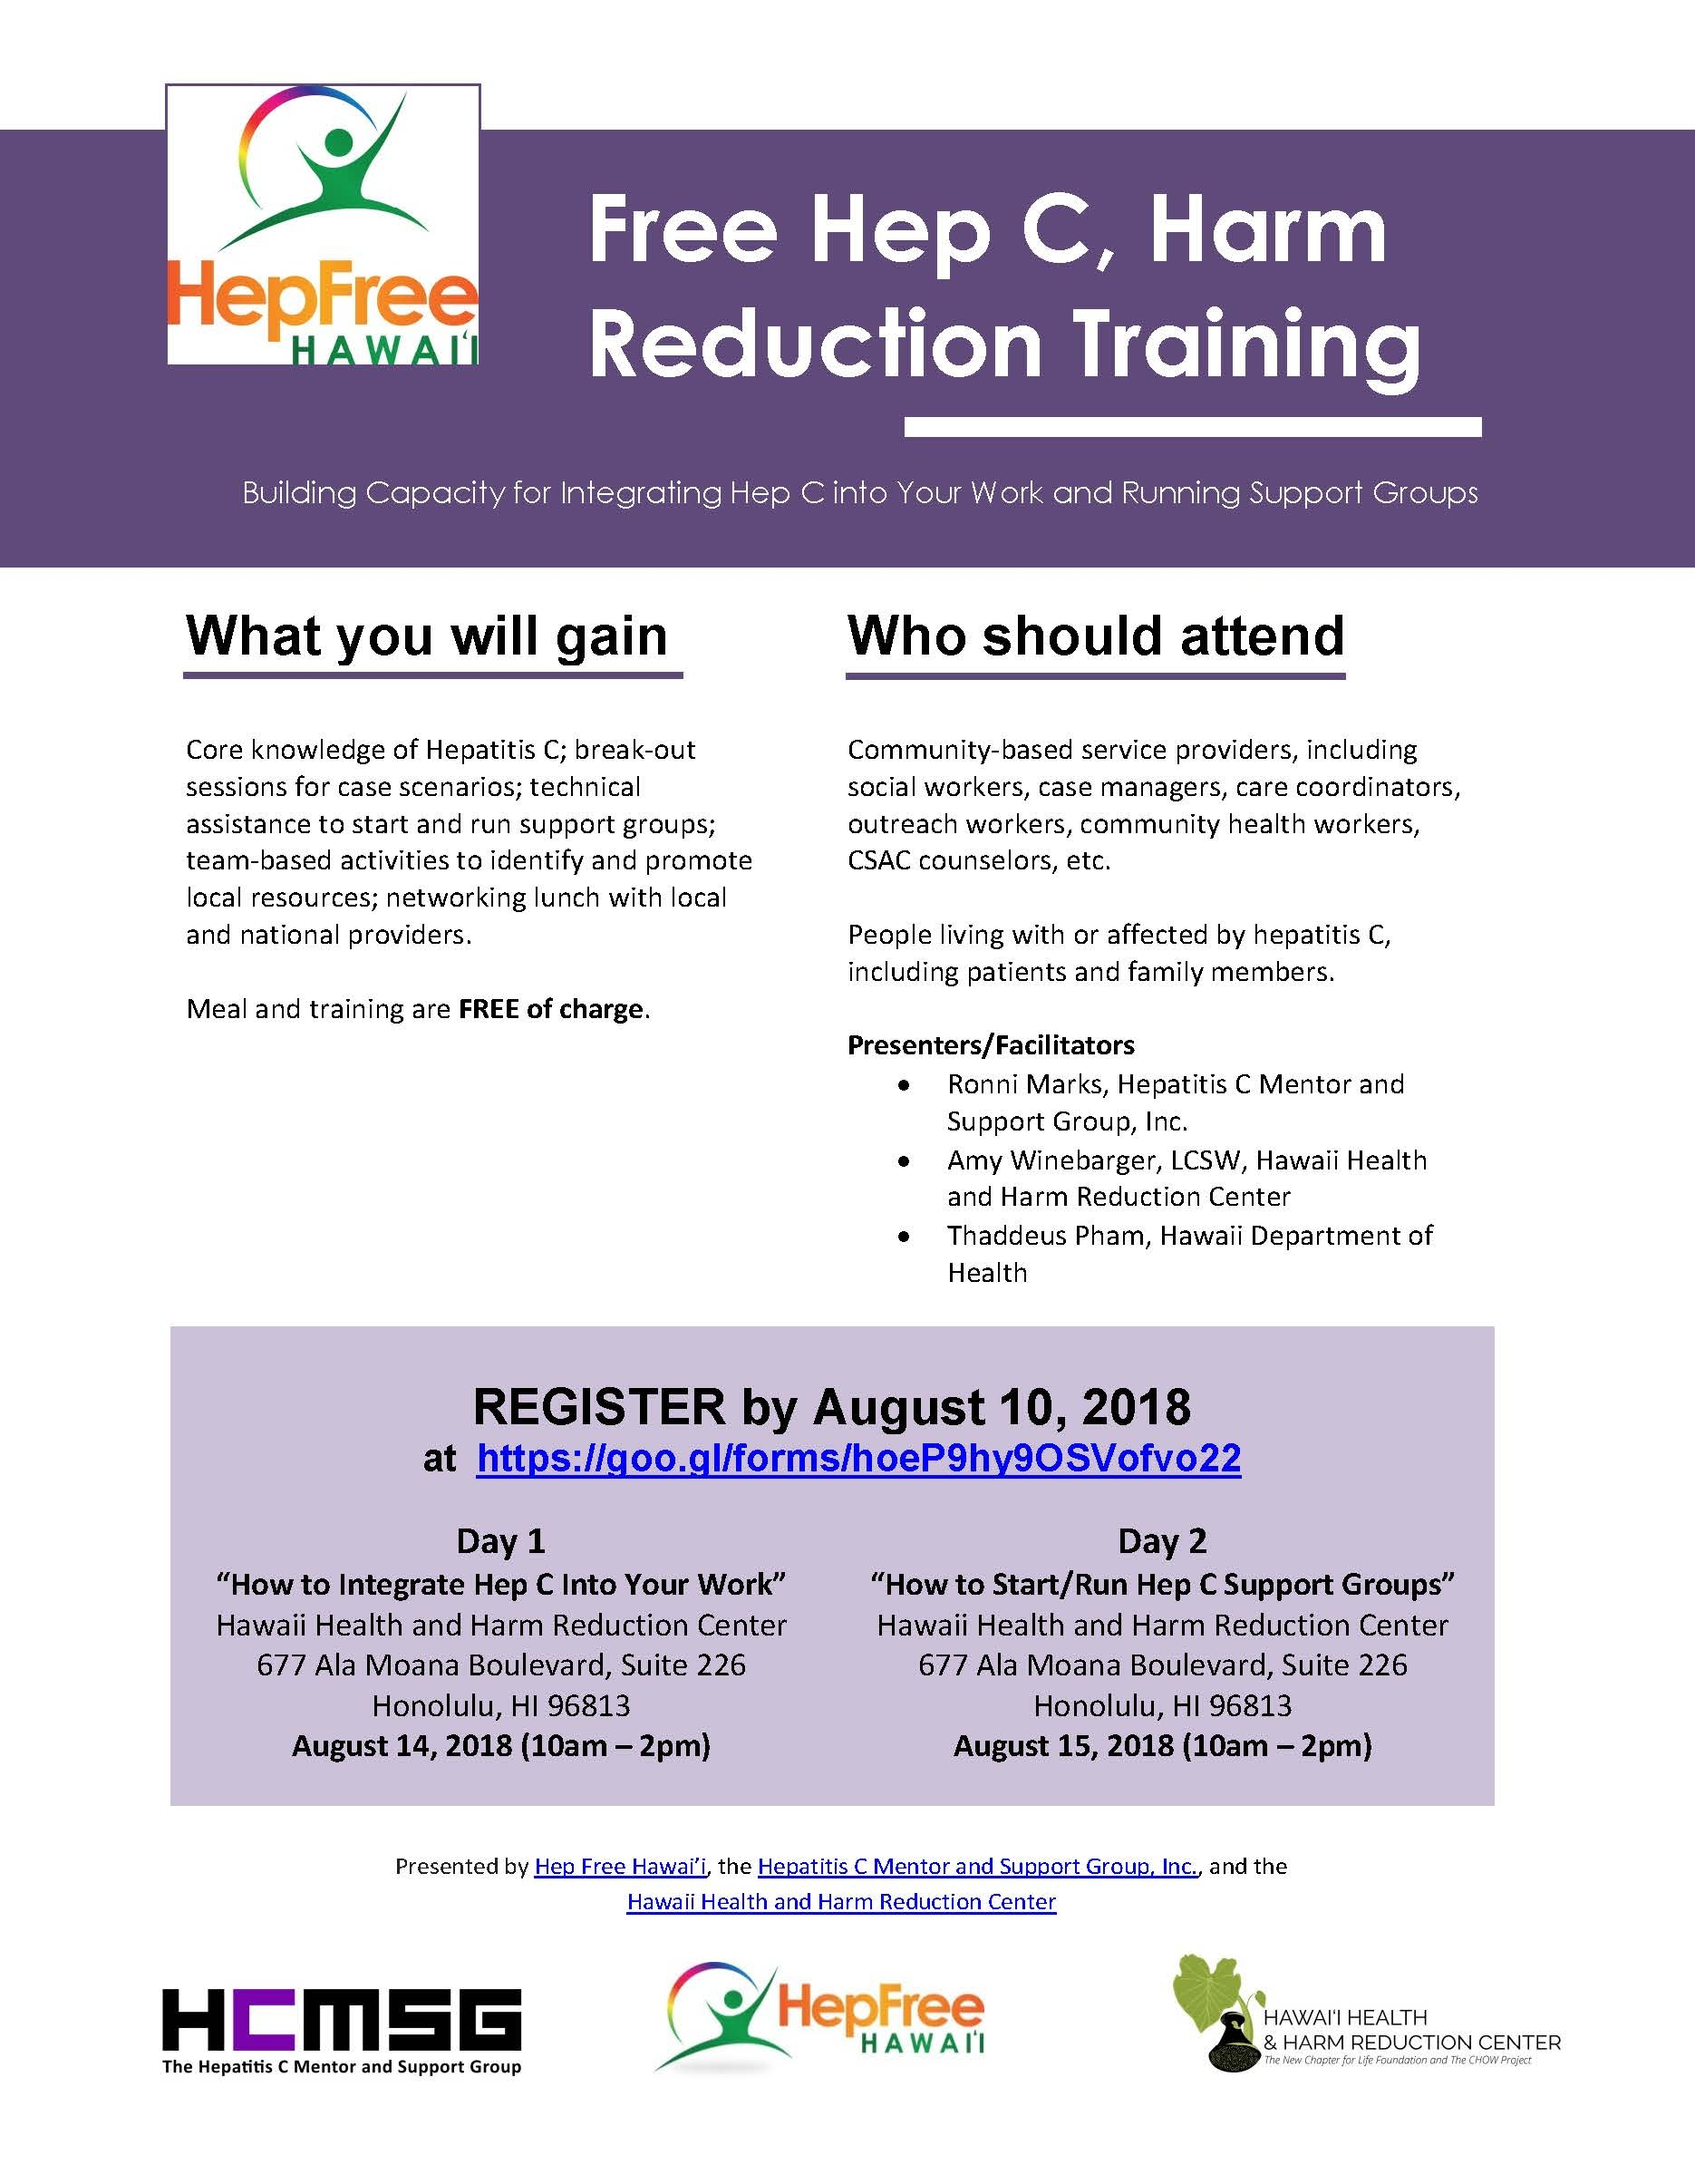 Handout-Hep C Support Group Training (7-19-2018).jpg